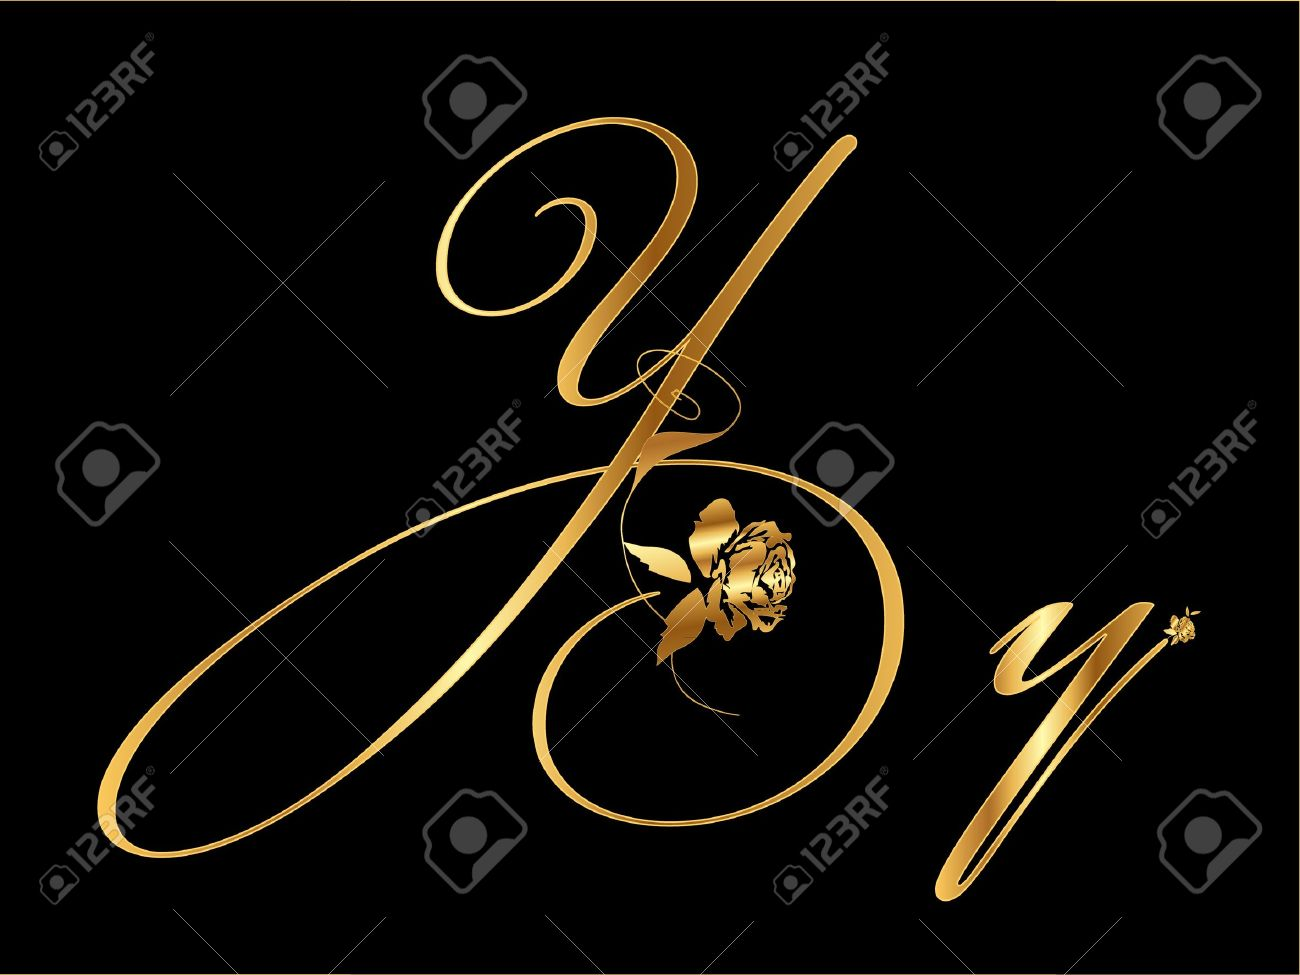 Gold letter y royalty free cliparts vectors and stock illustration gold letter y stock vector 10599236 altavistaventures Choice Image